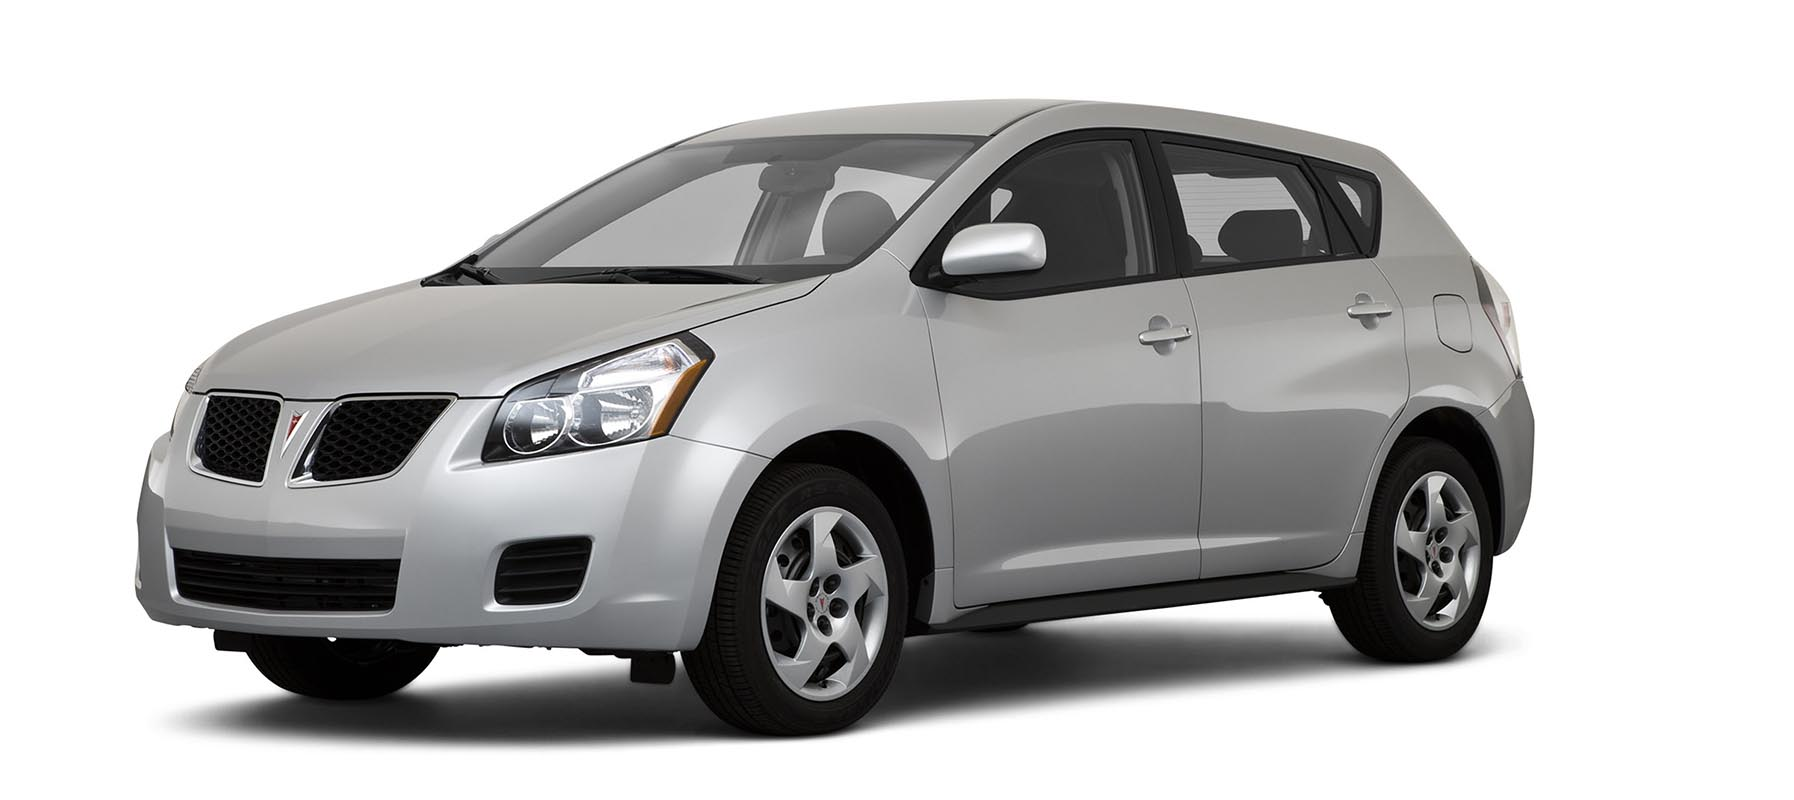 Pontiac G6 Service By Top Rated Mechanics Yourmechanic 2009 Fuel Filter